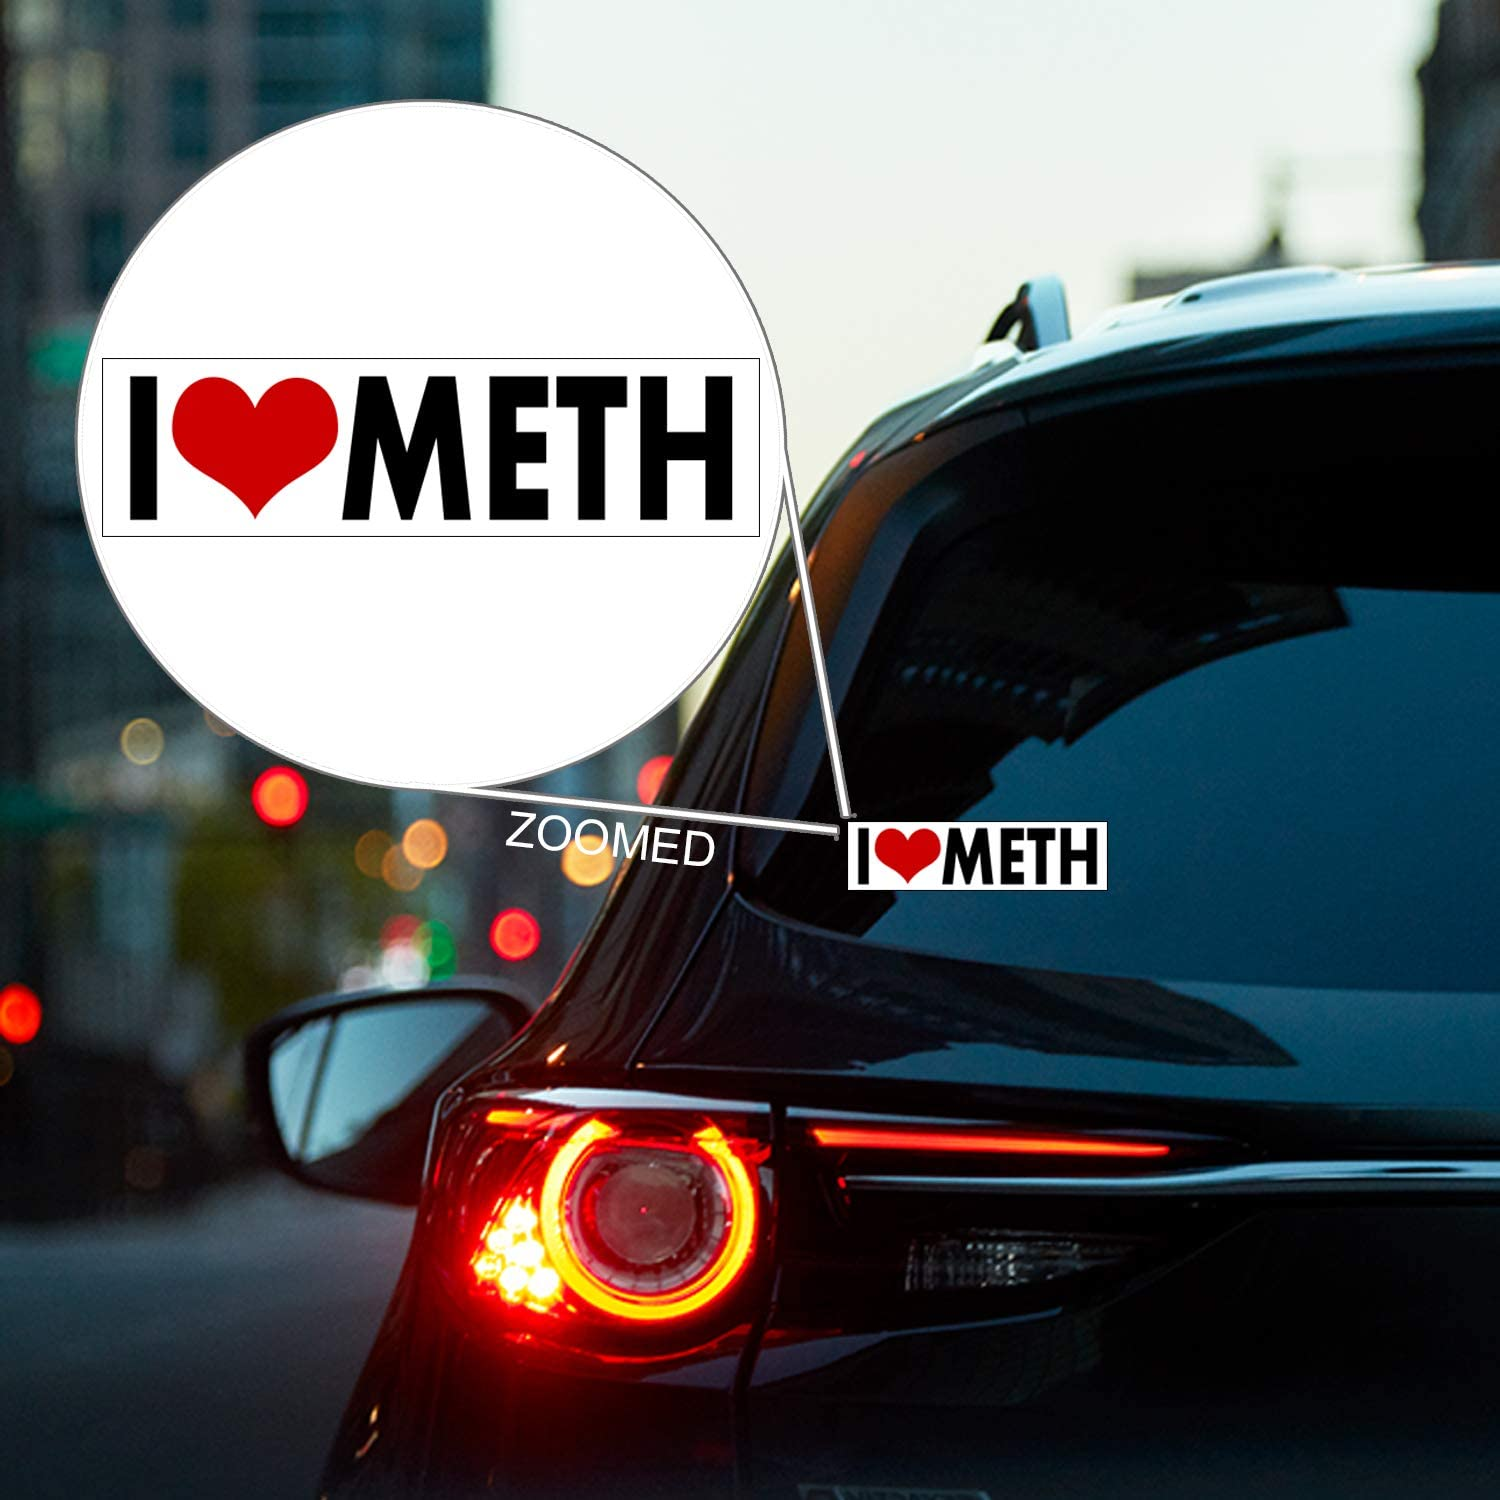 Multisurface Decal WitnyStore I Love Meth Sticker Durable and Waterproof Funny Adult Humor Sticker for Cars Trucks RVs Boats Windows Lockers and More